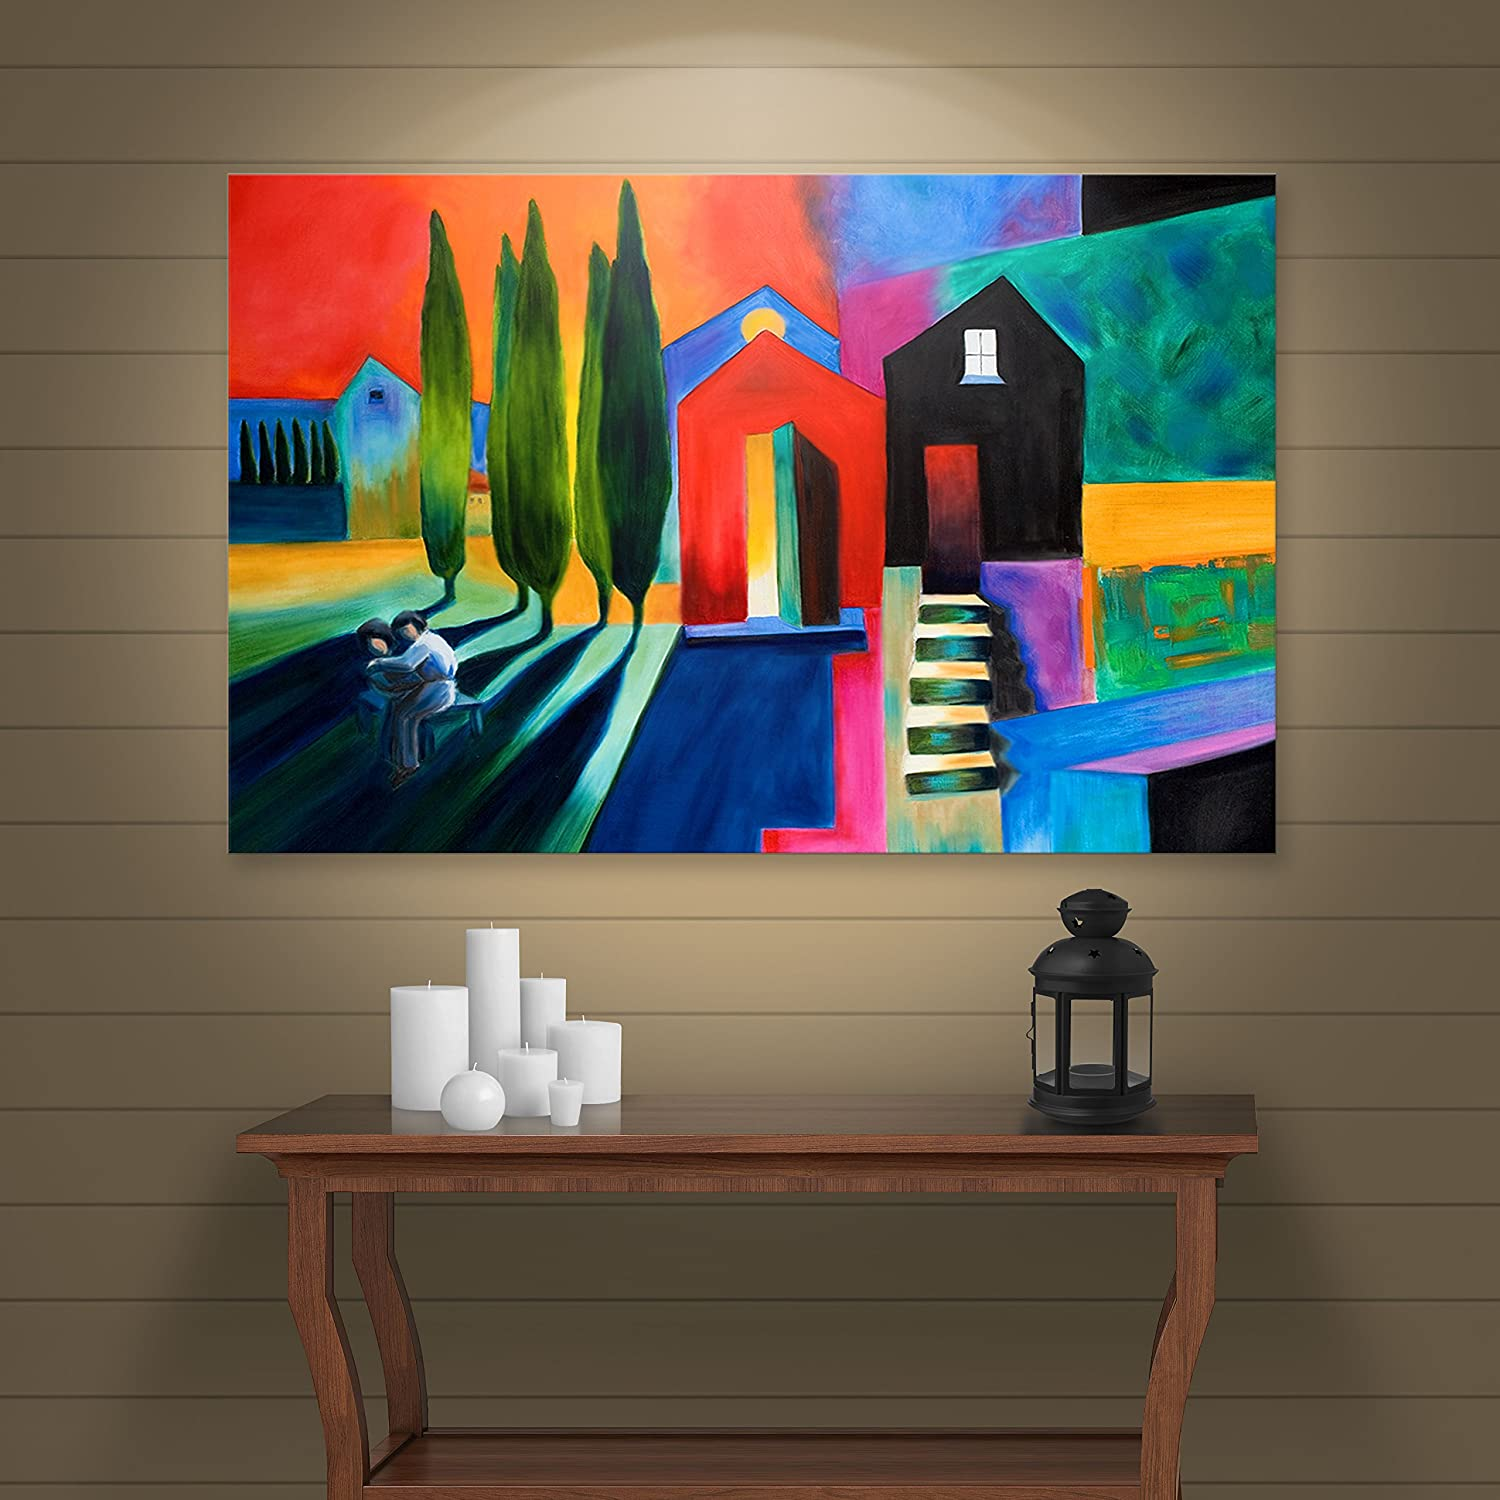 Art Wall 'Trying to Talk Her Into It' by Susi Franco Gallery Wrapped Canvas Artwork, 18 by 24-Inch